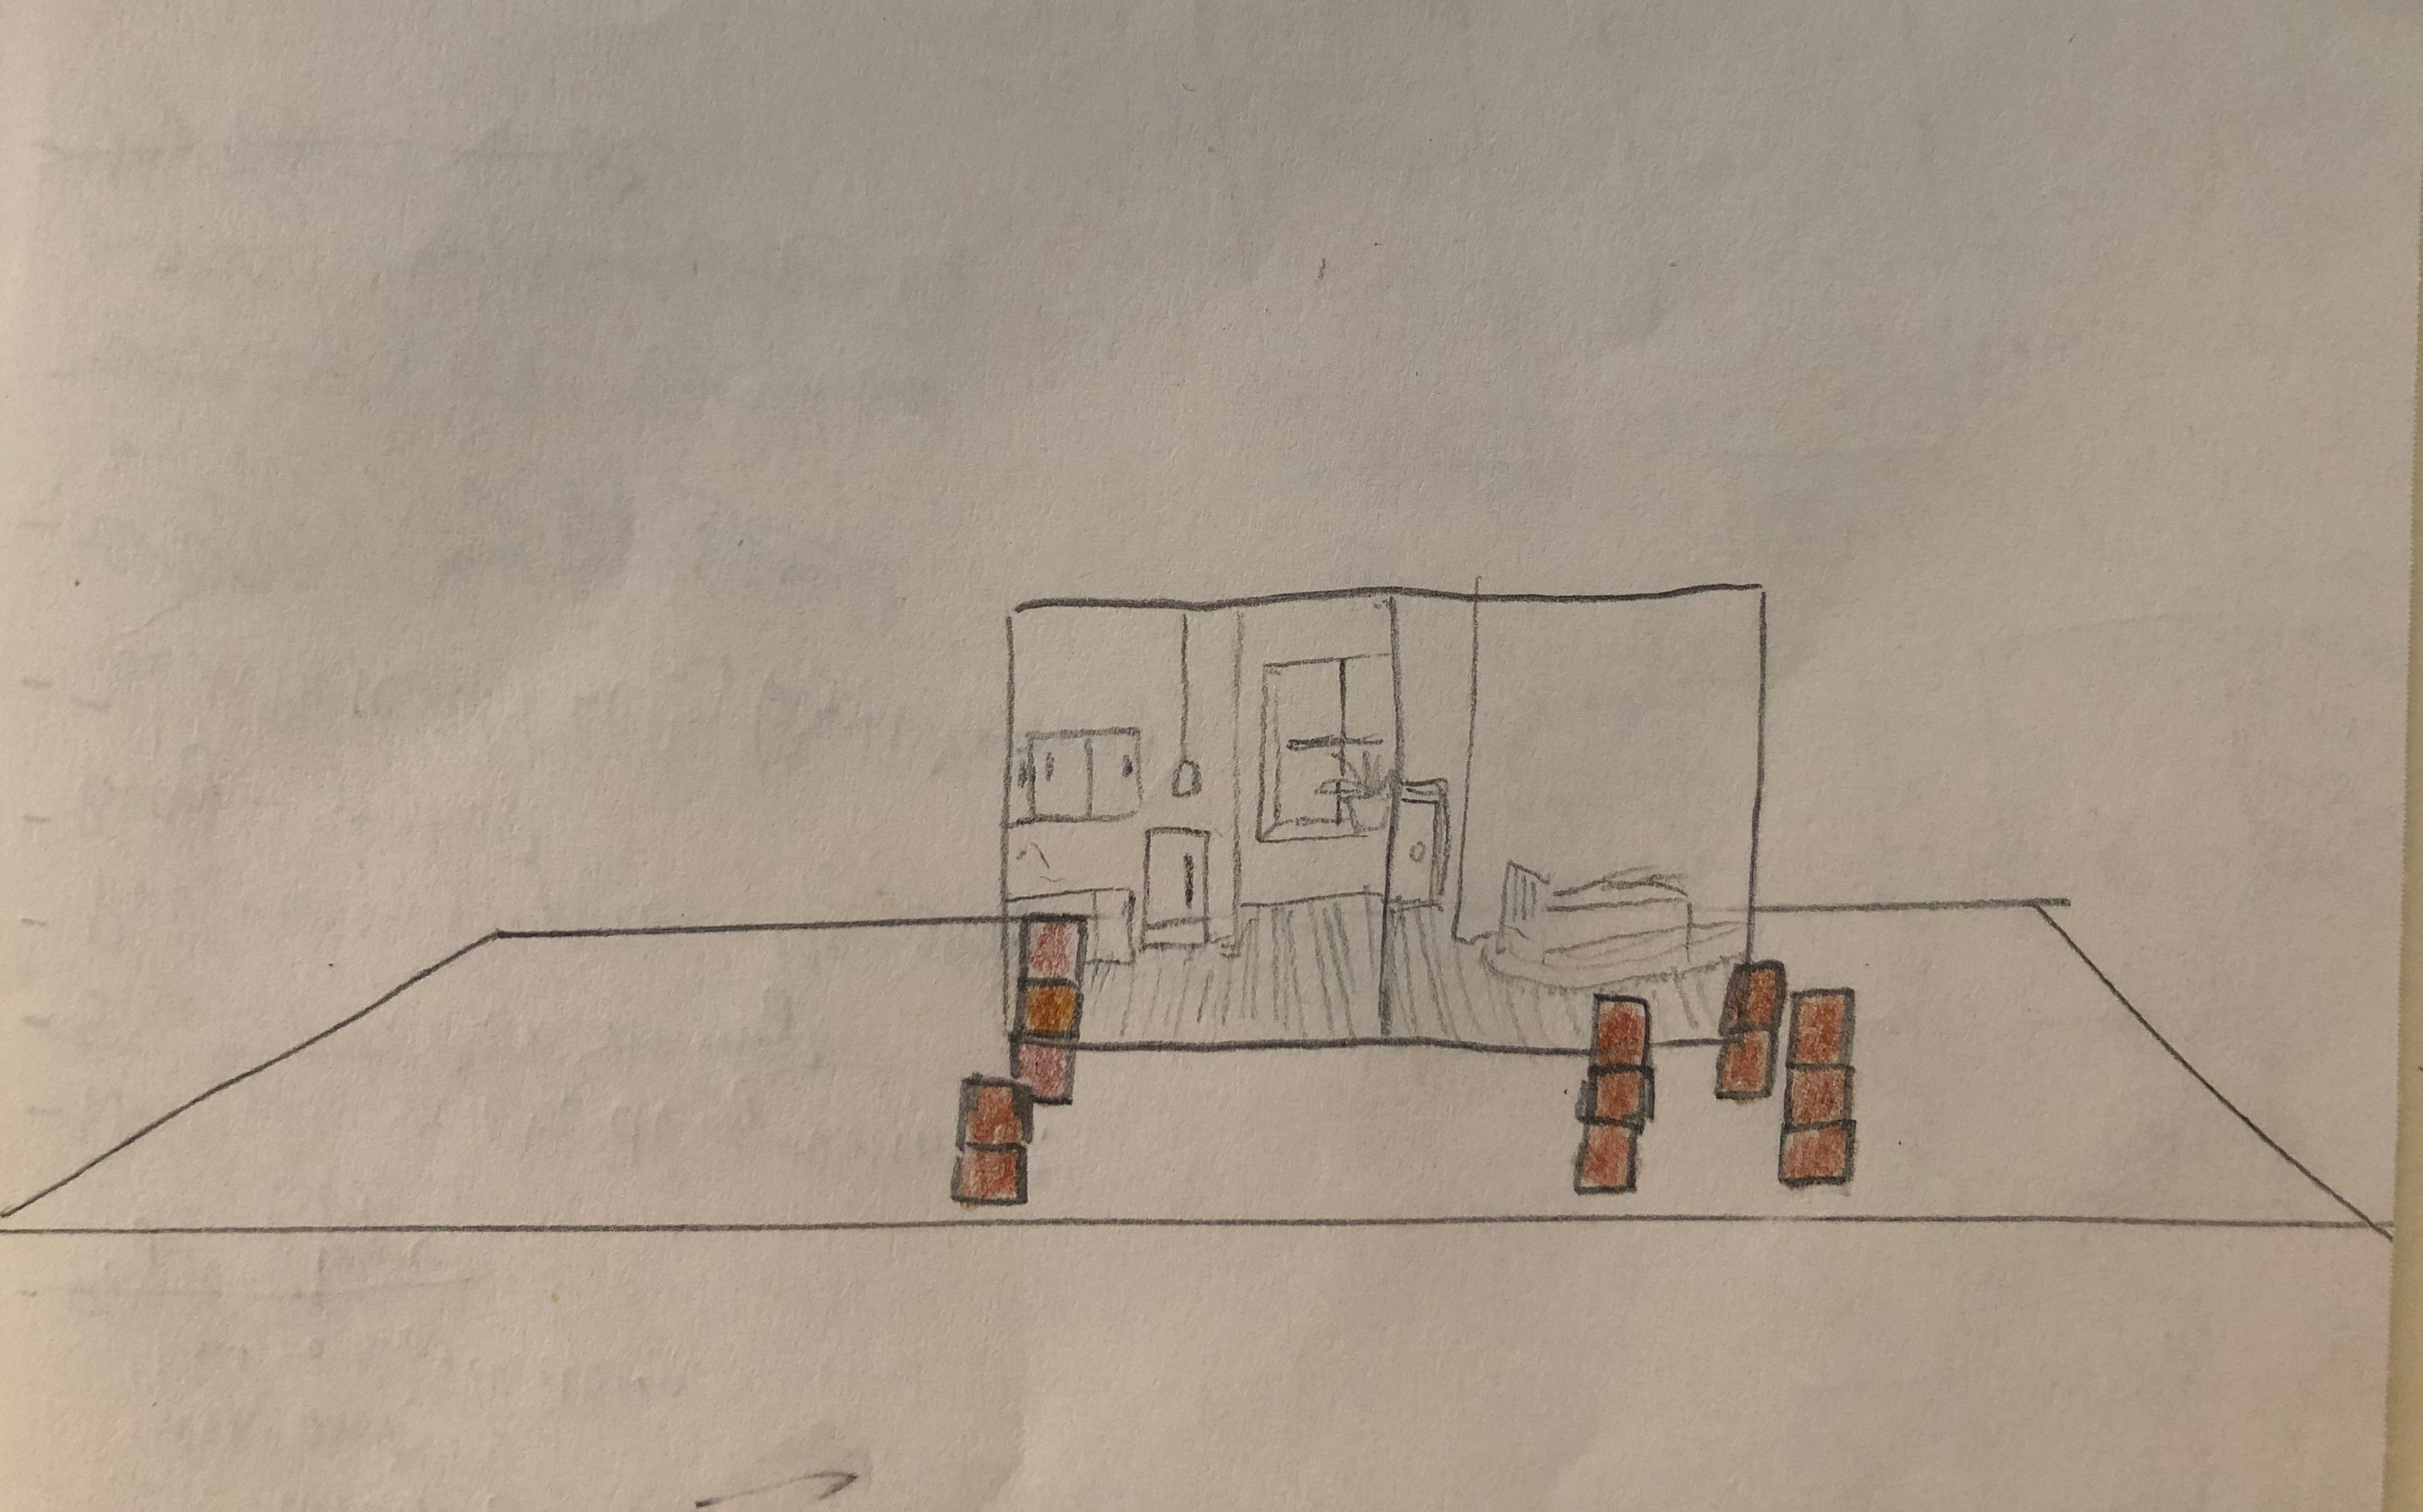 Sketch of the Two Walls